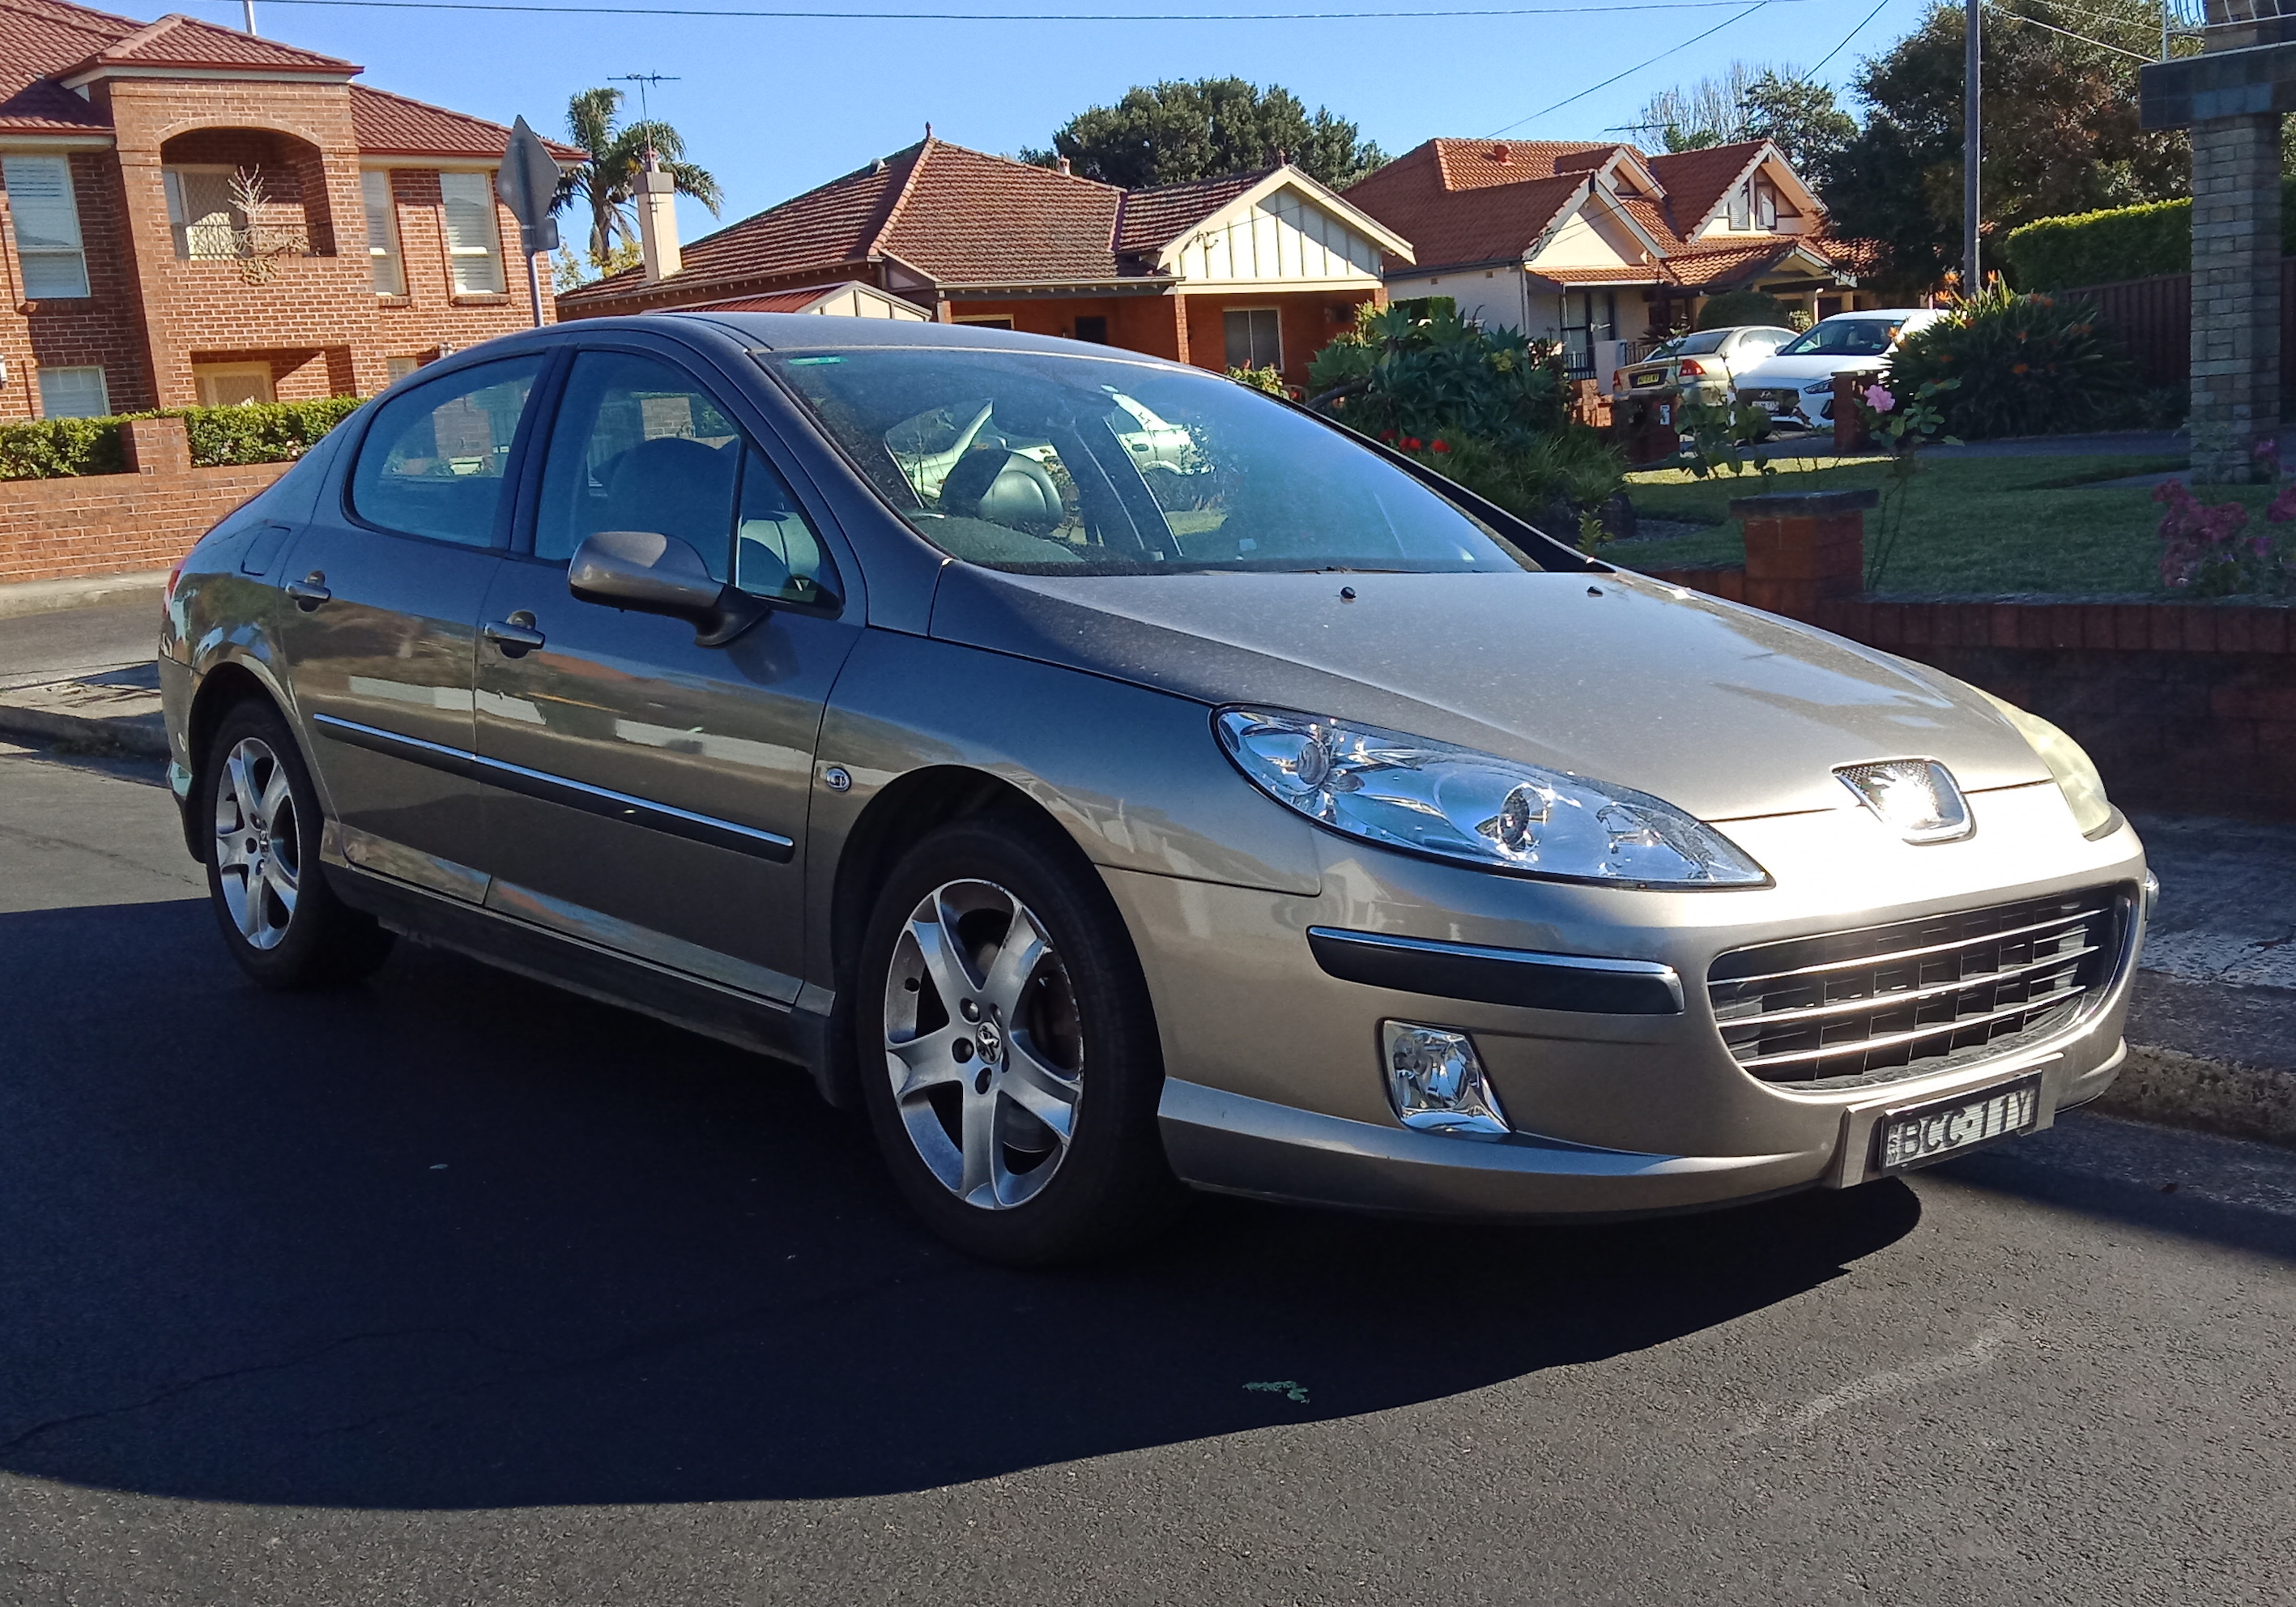 Picture of Georgette's 2007 Peugeot 407